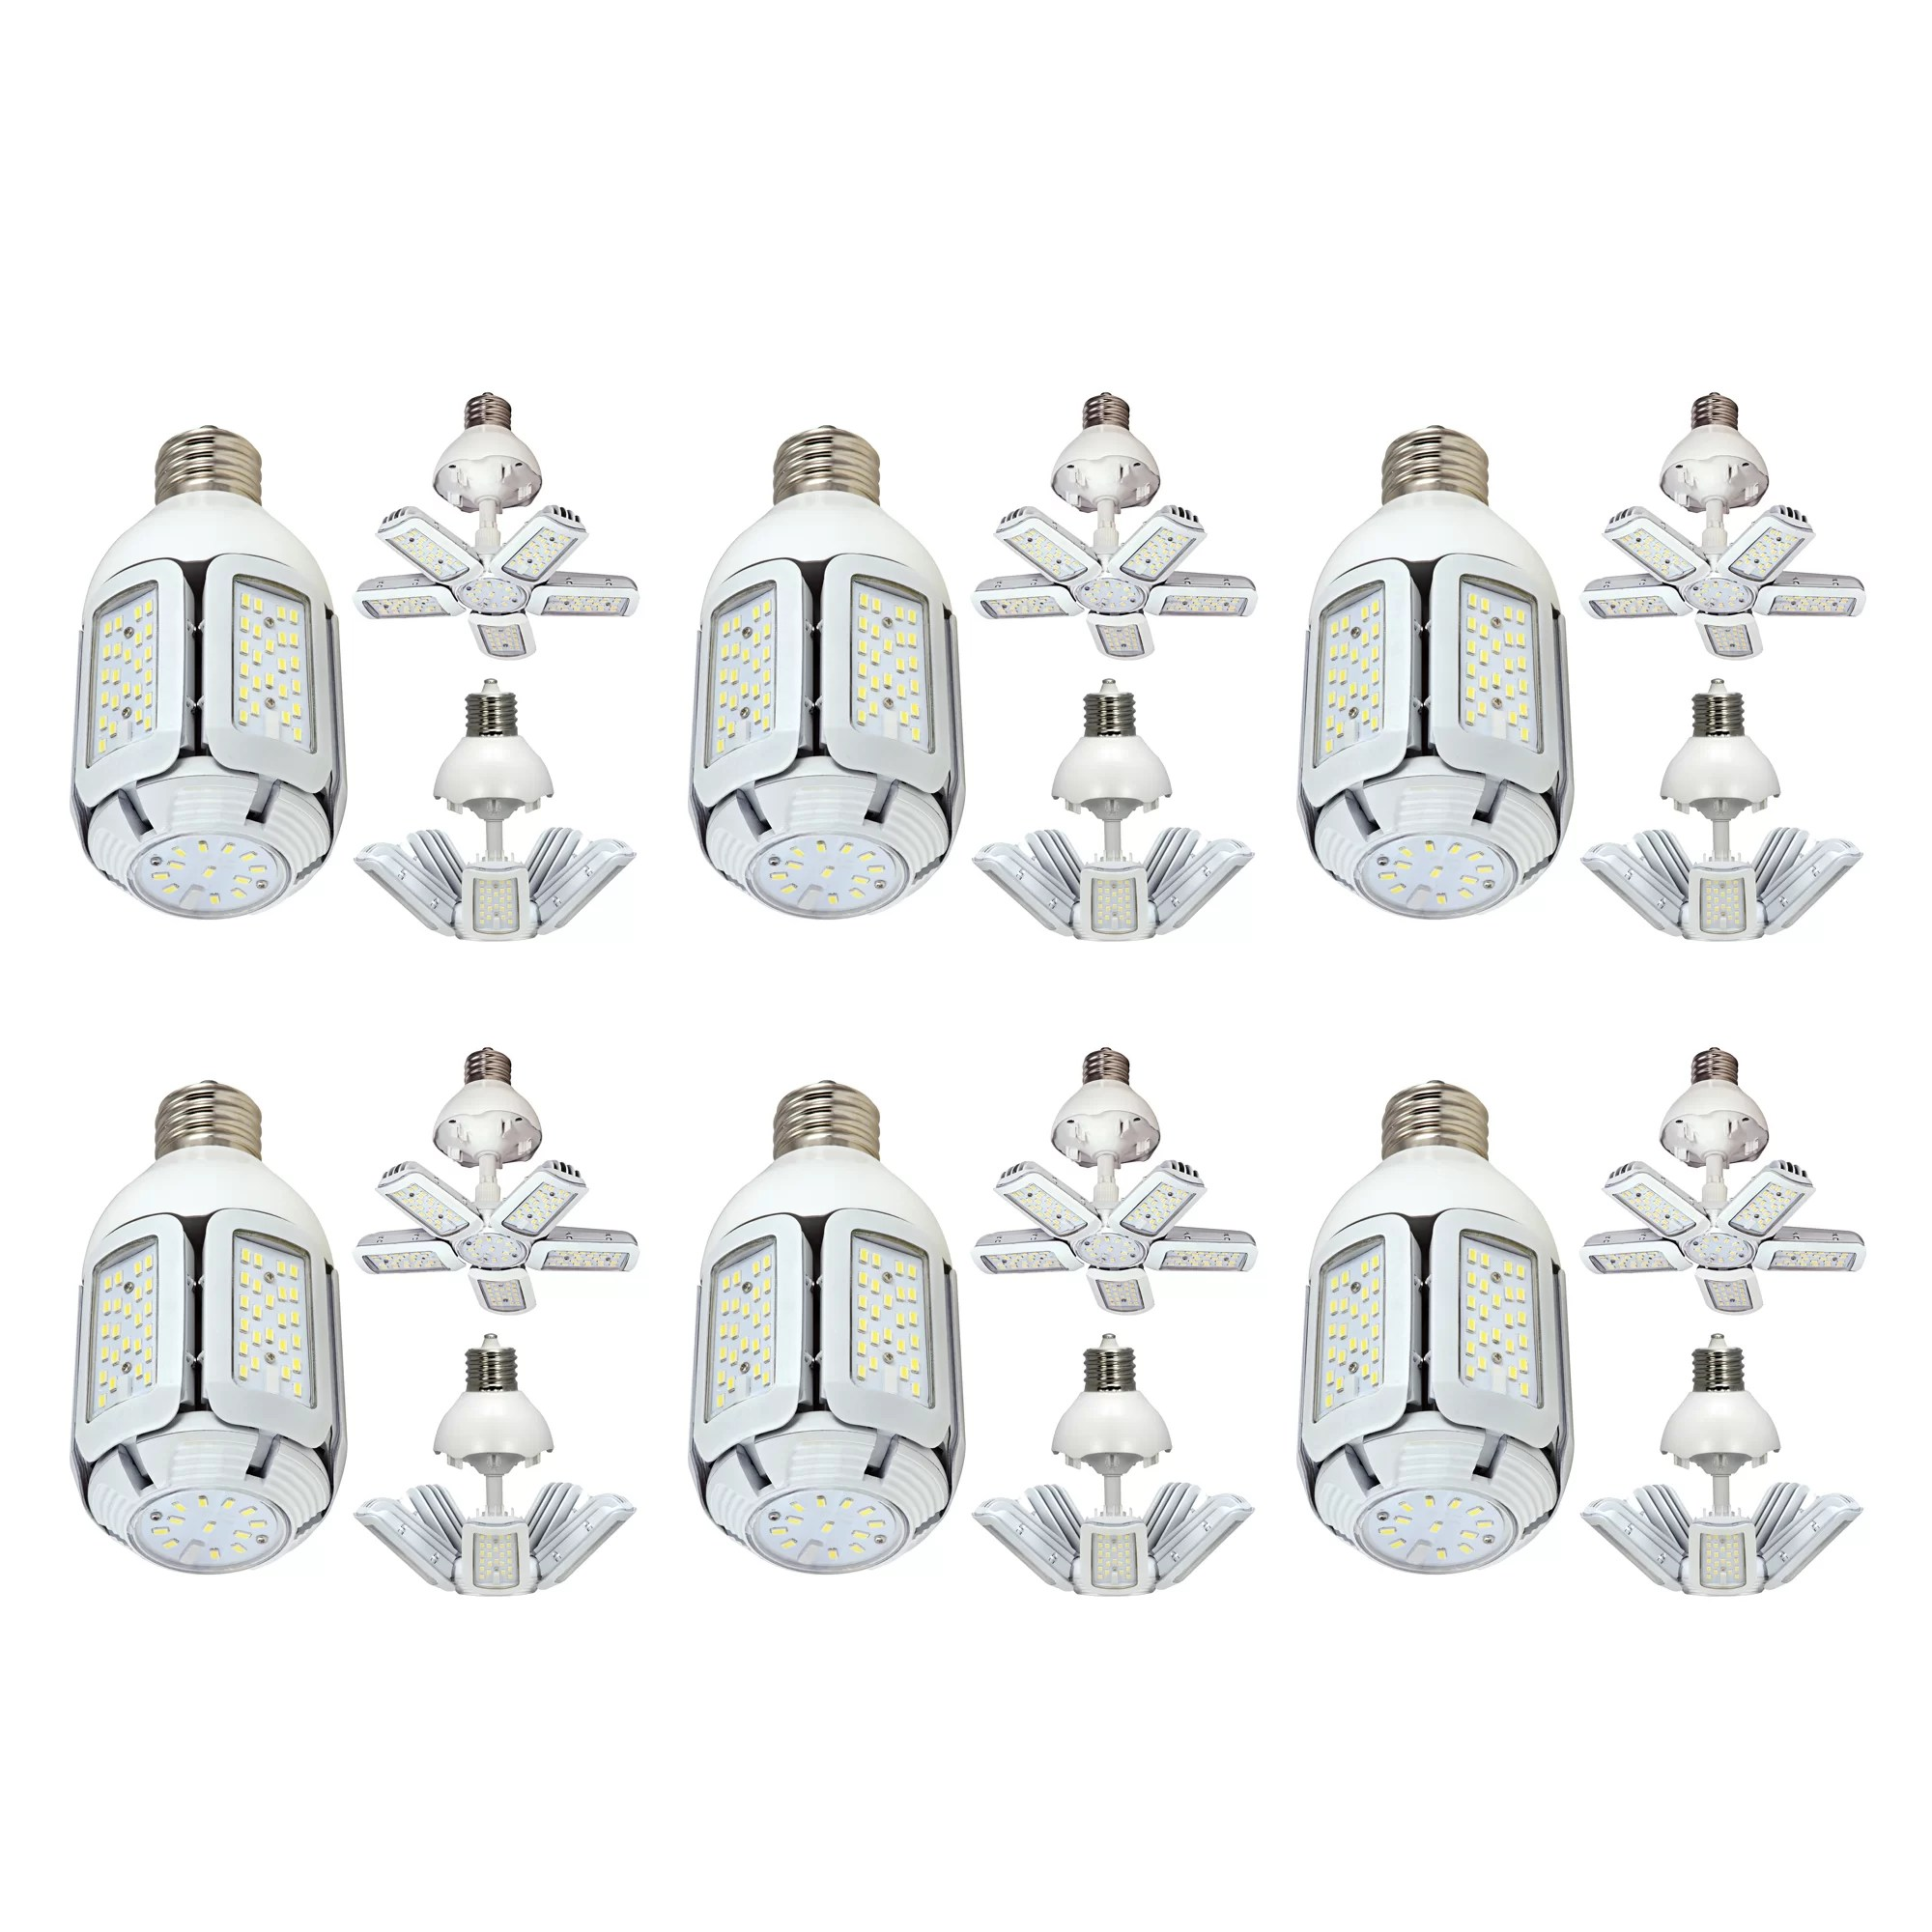 Satco 60 Watt 500 Watt Equivalent Led Non Dimmable Light